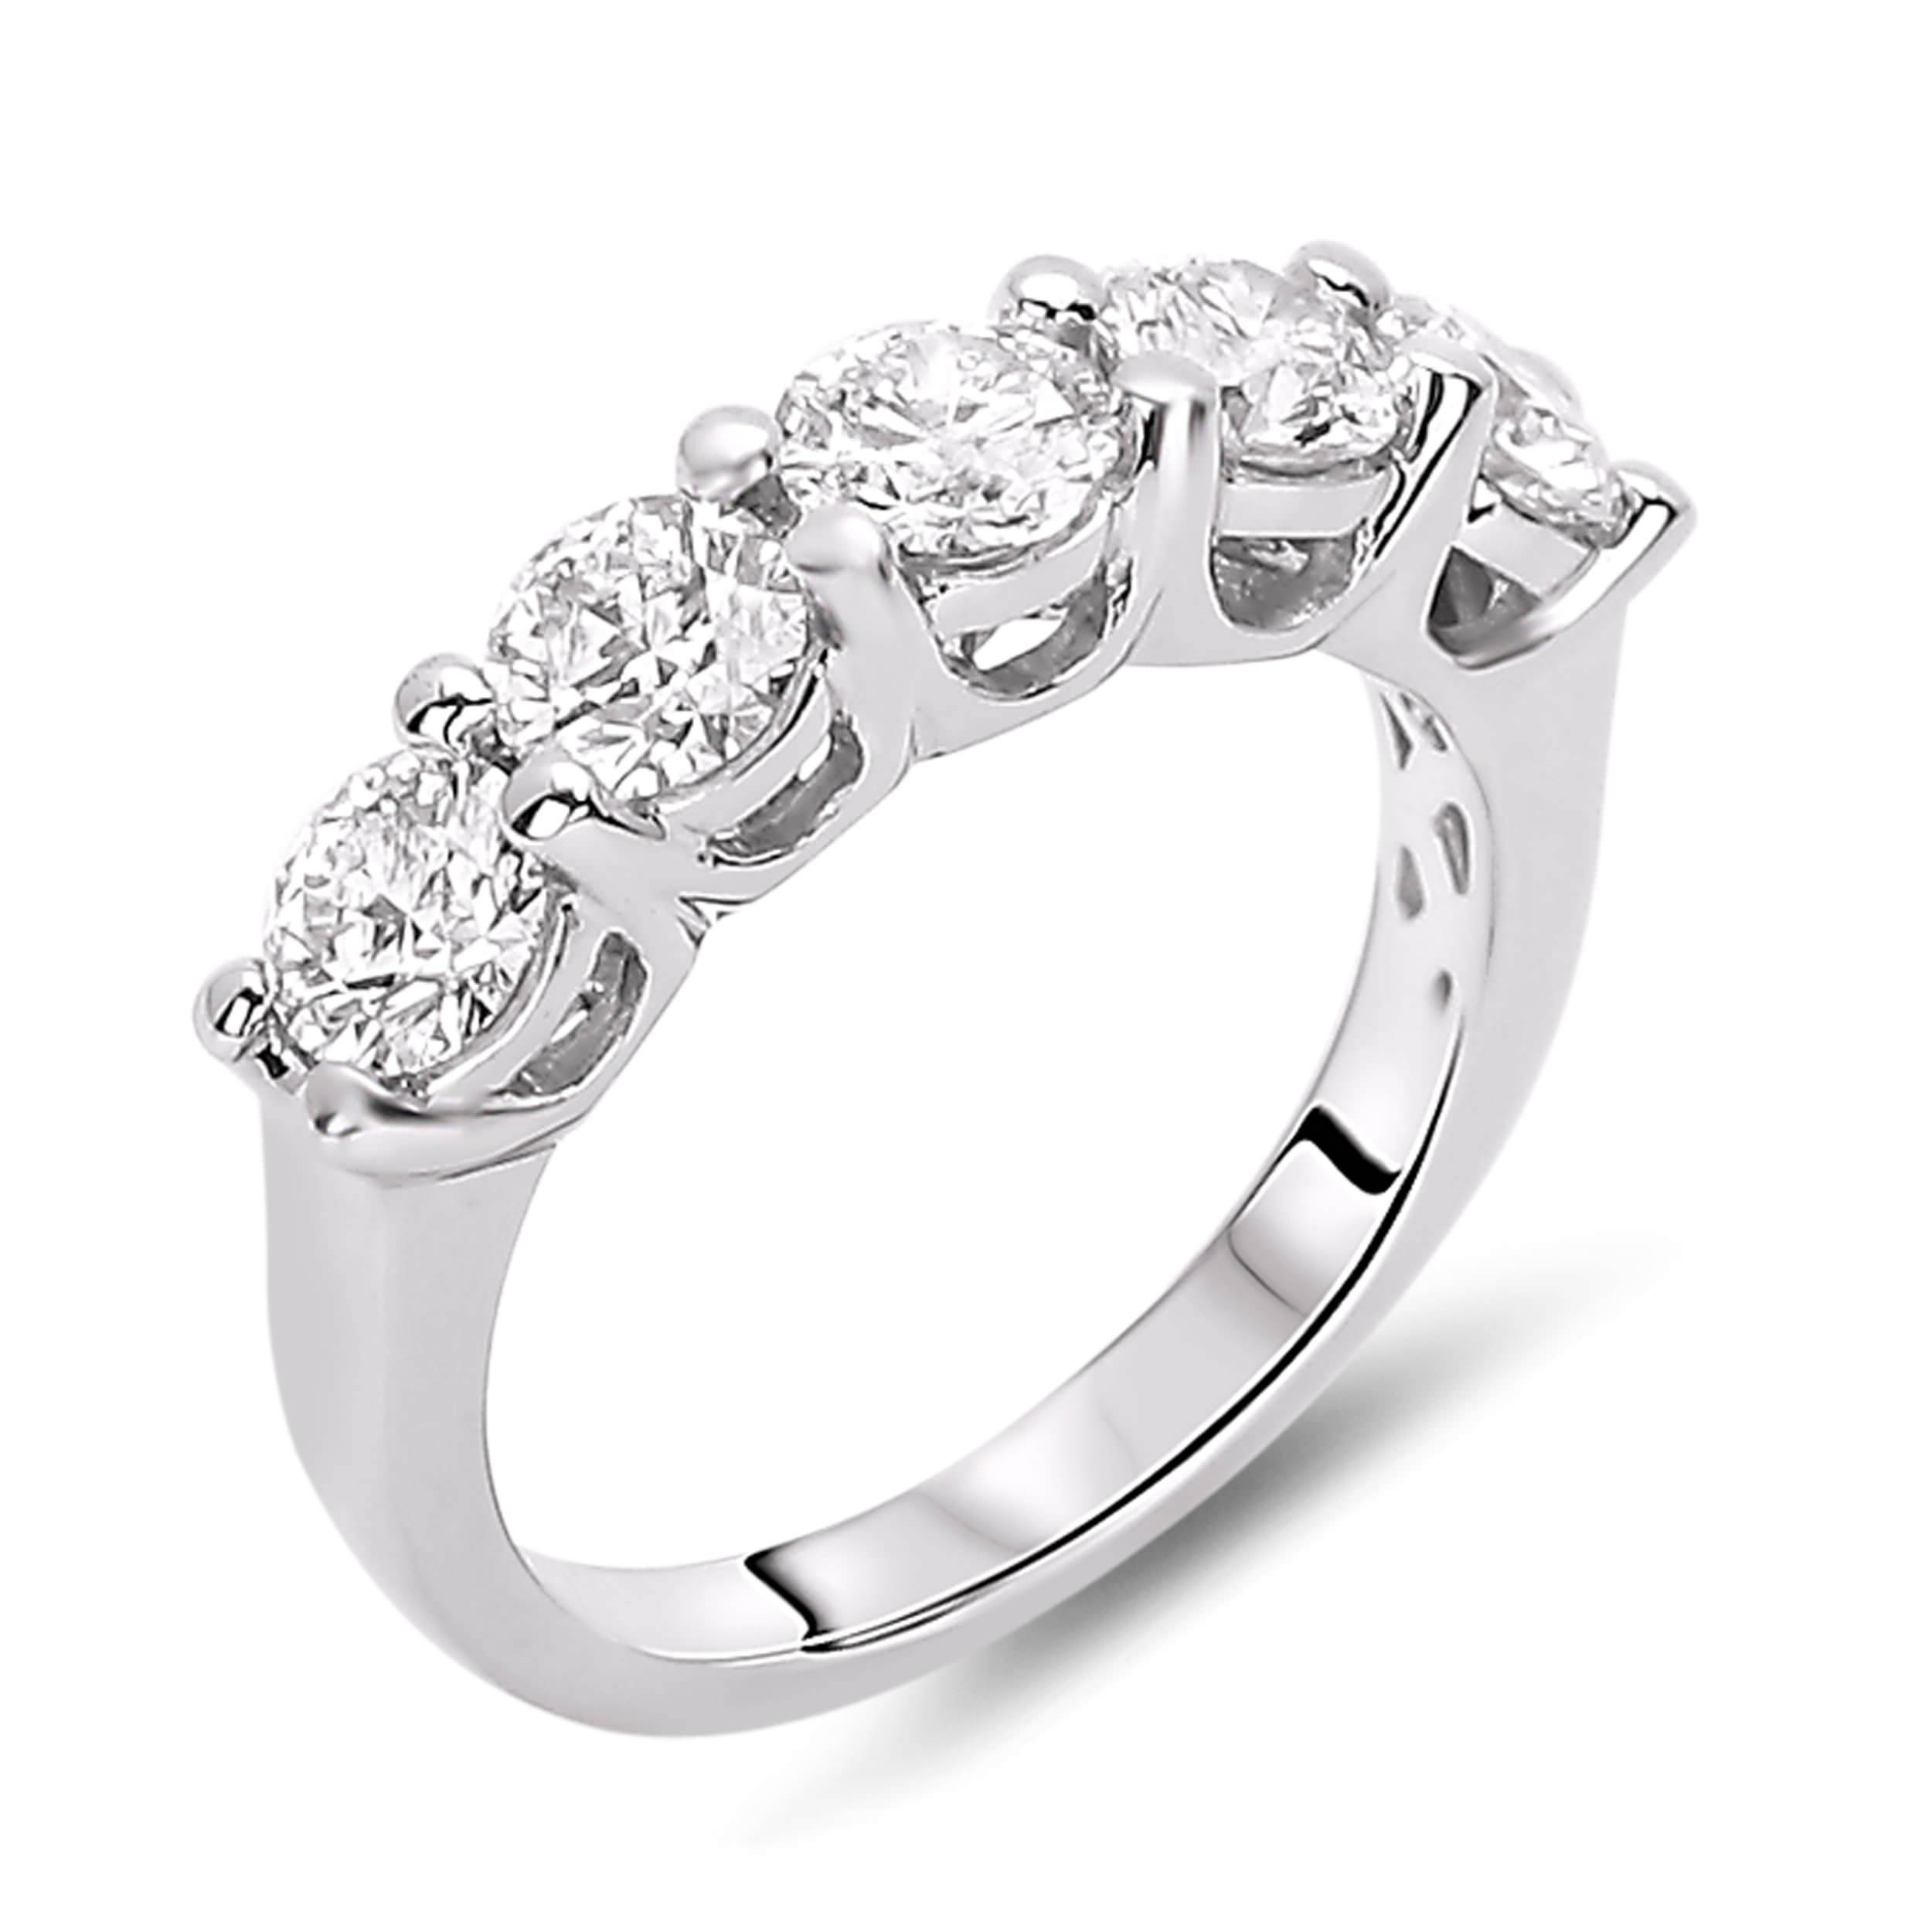 year her solitaire anniversary of for engagement zales stone ring unique past galleries baguette eternity rings grace him diamond sets wedding band three costco beautiful carat and bands